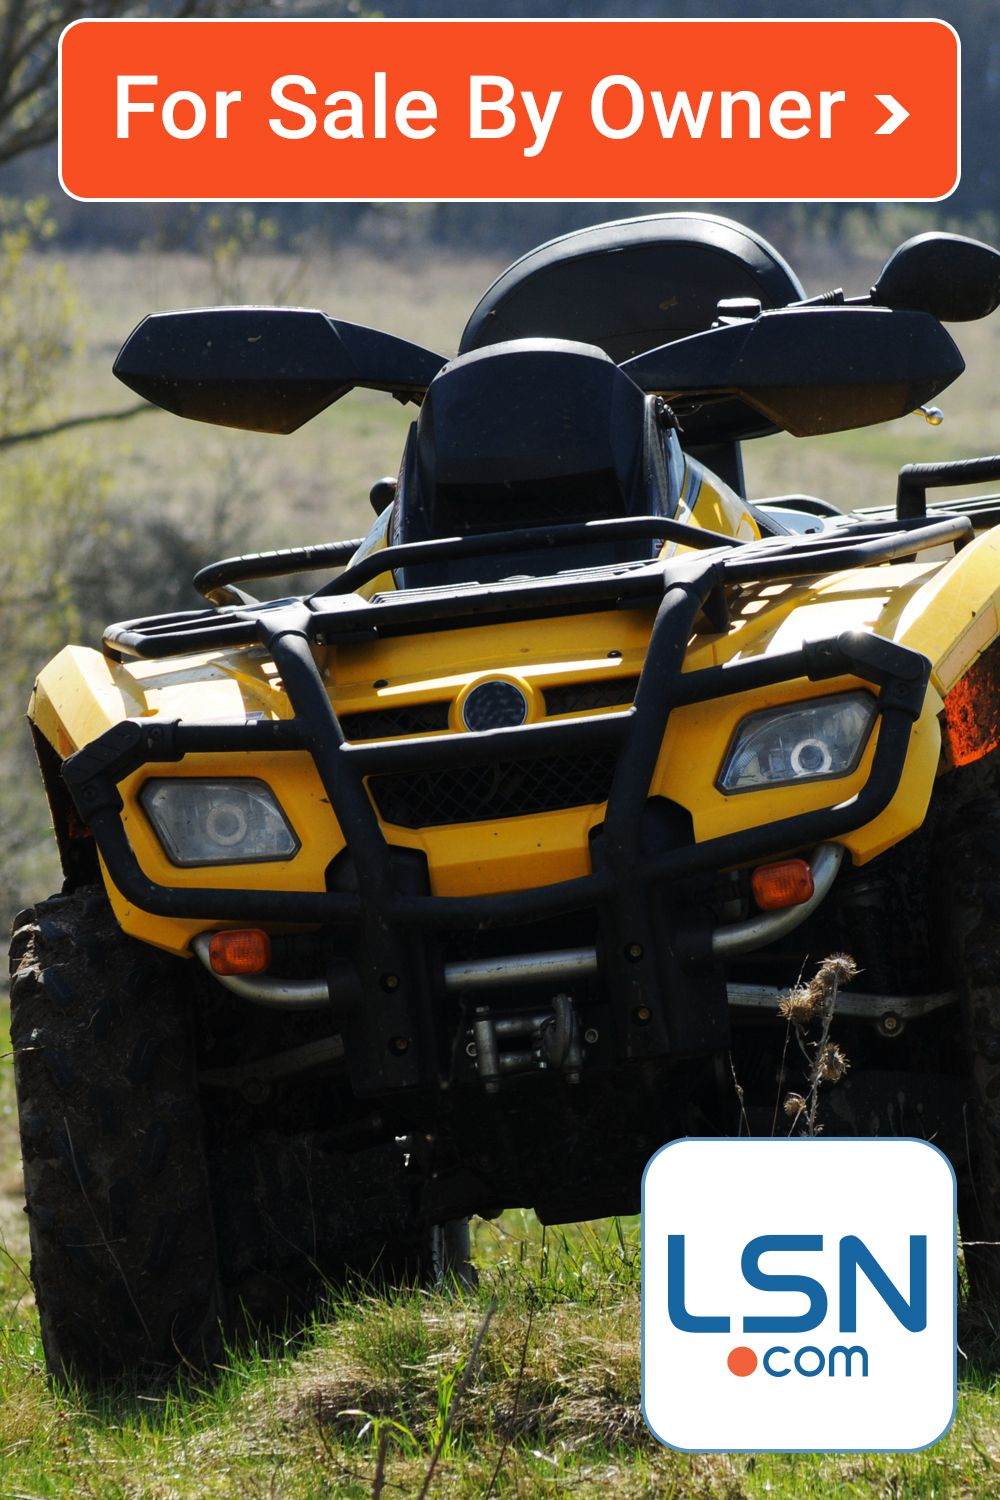 Used Atvs And Off Road Vehicles For Sale By Owner Or Posta Free Ad